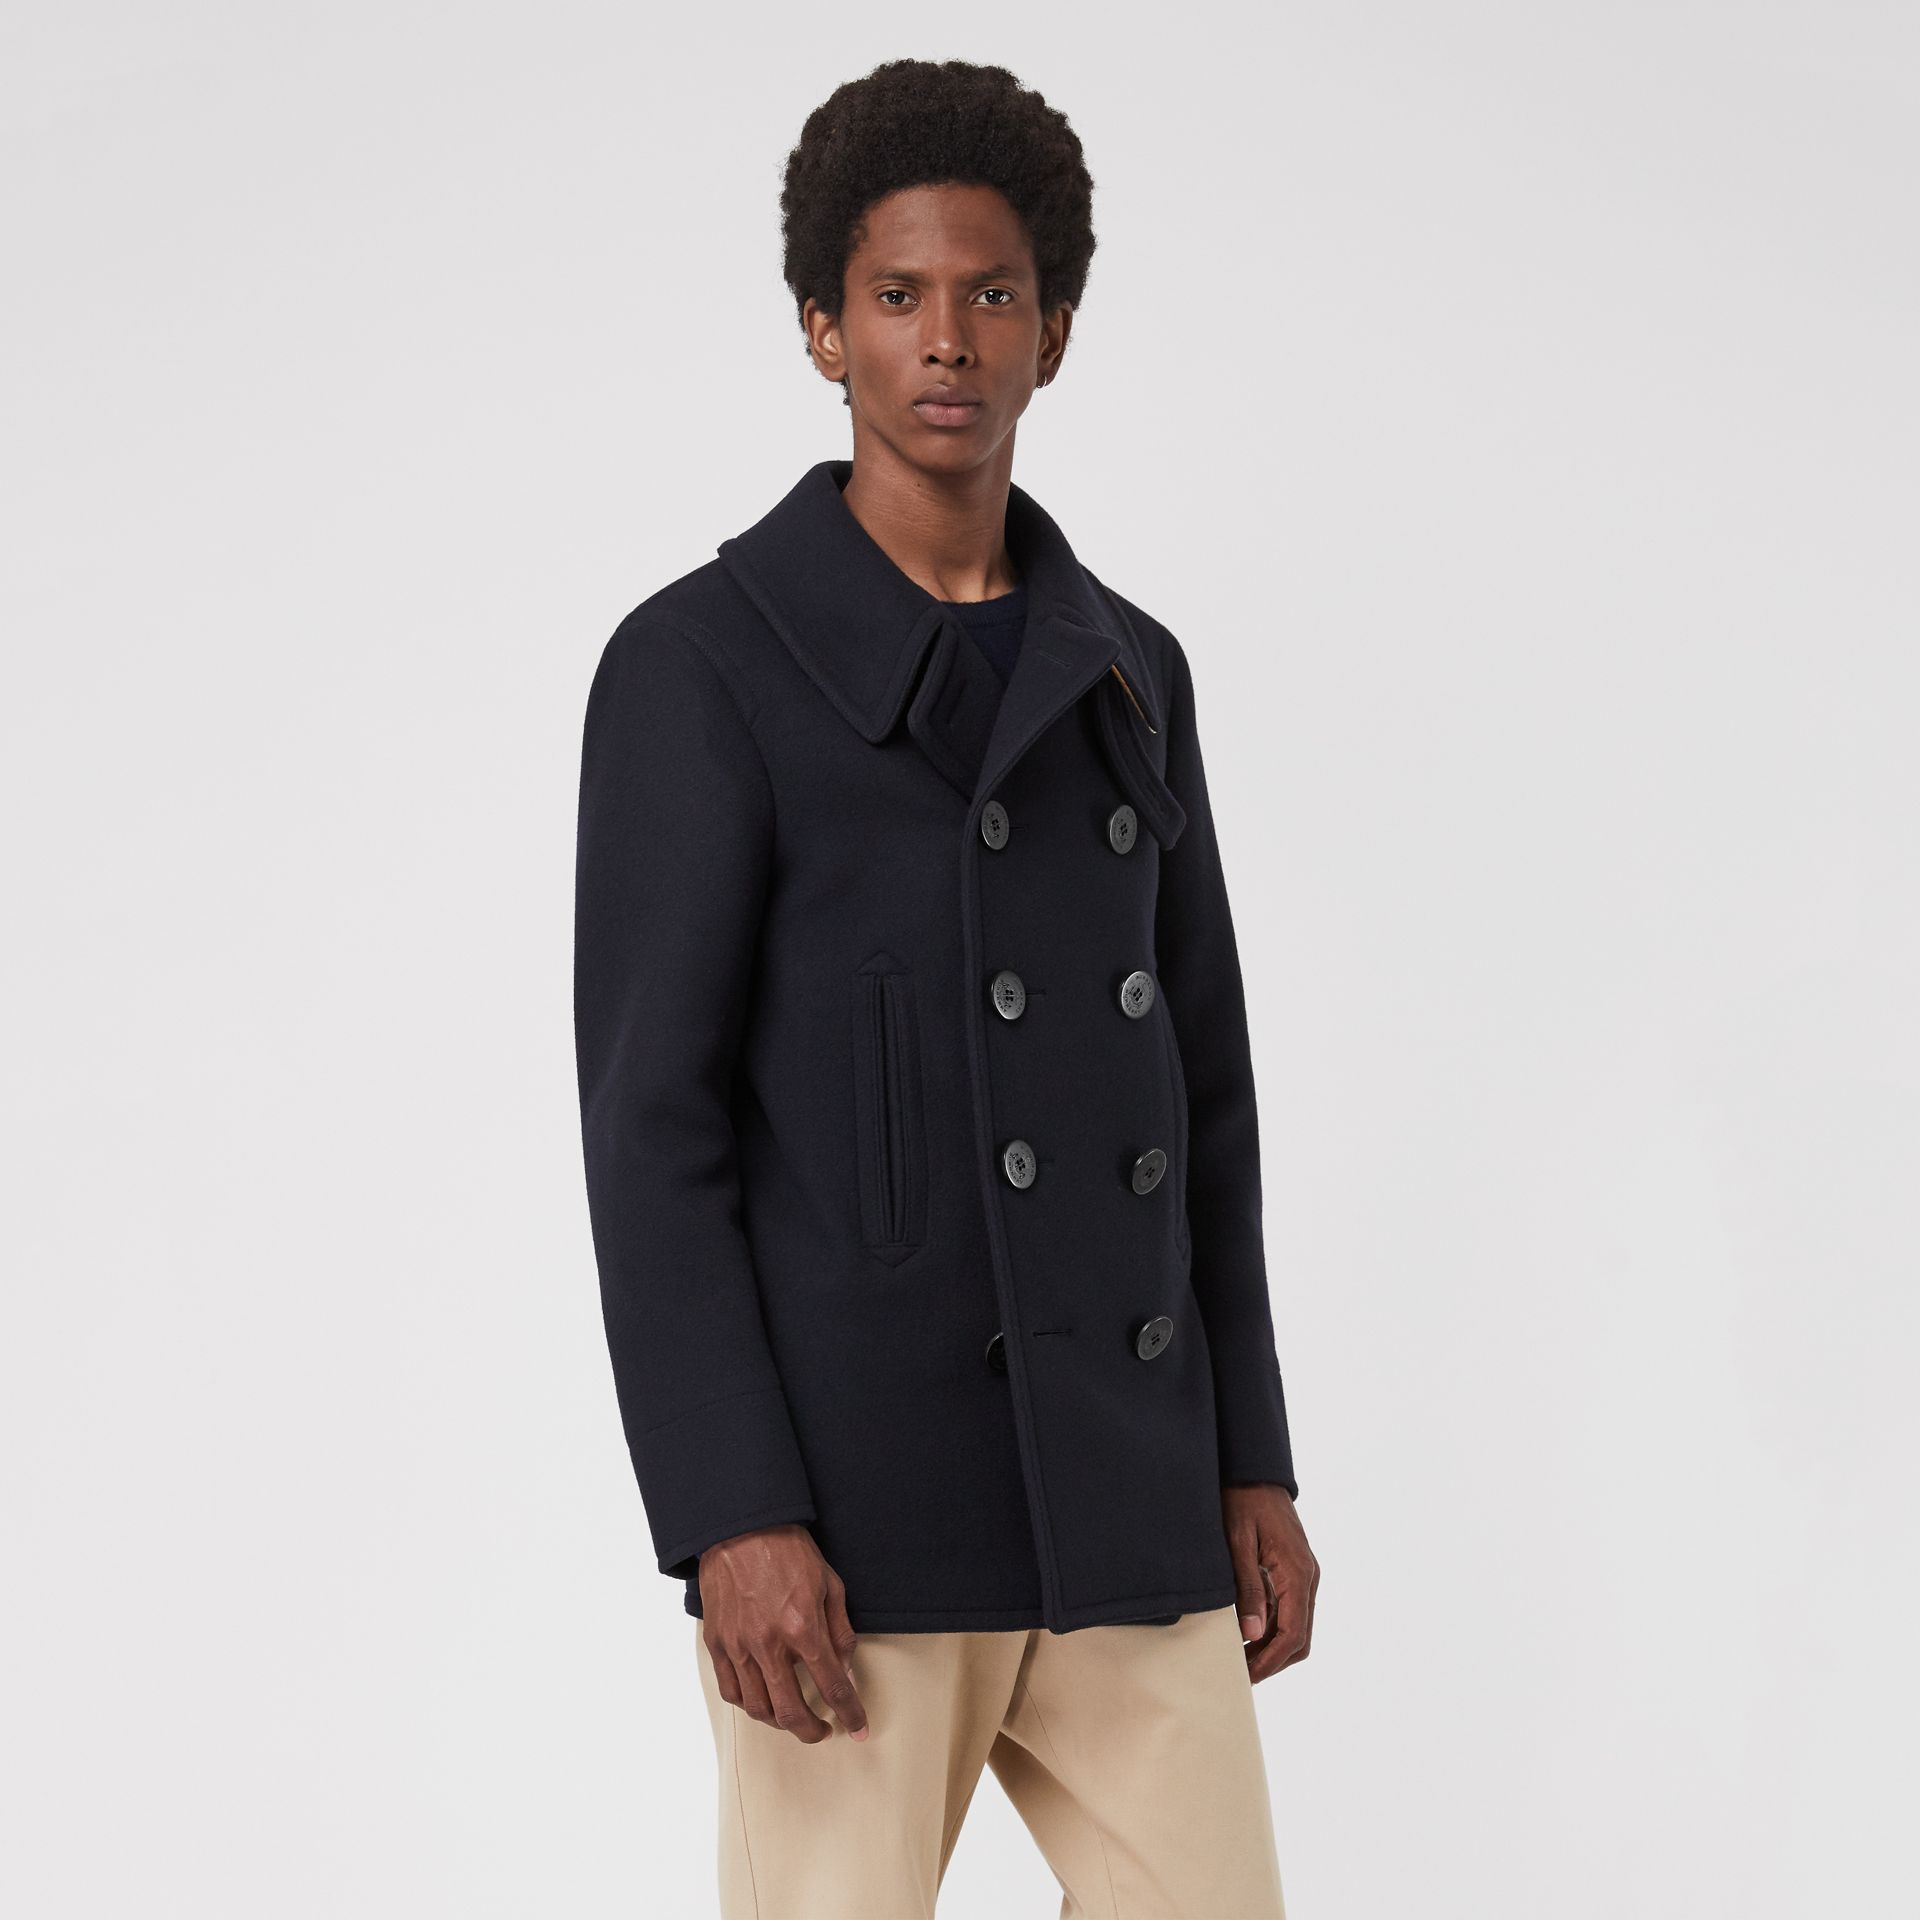 Wool Blend Pea Coat in Navy - Men | Burberry - gallery image 5